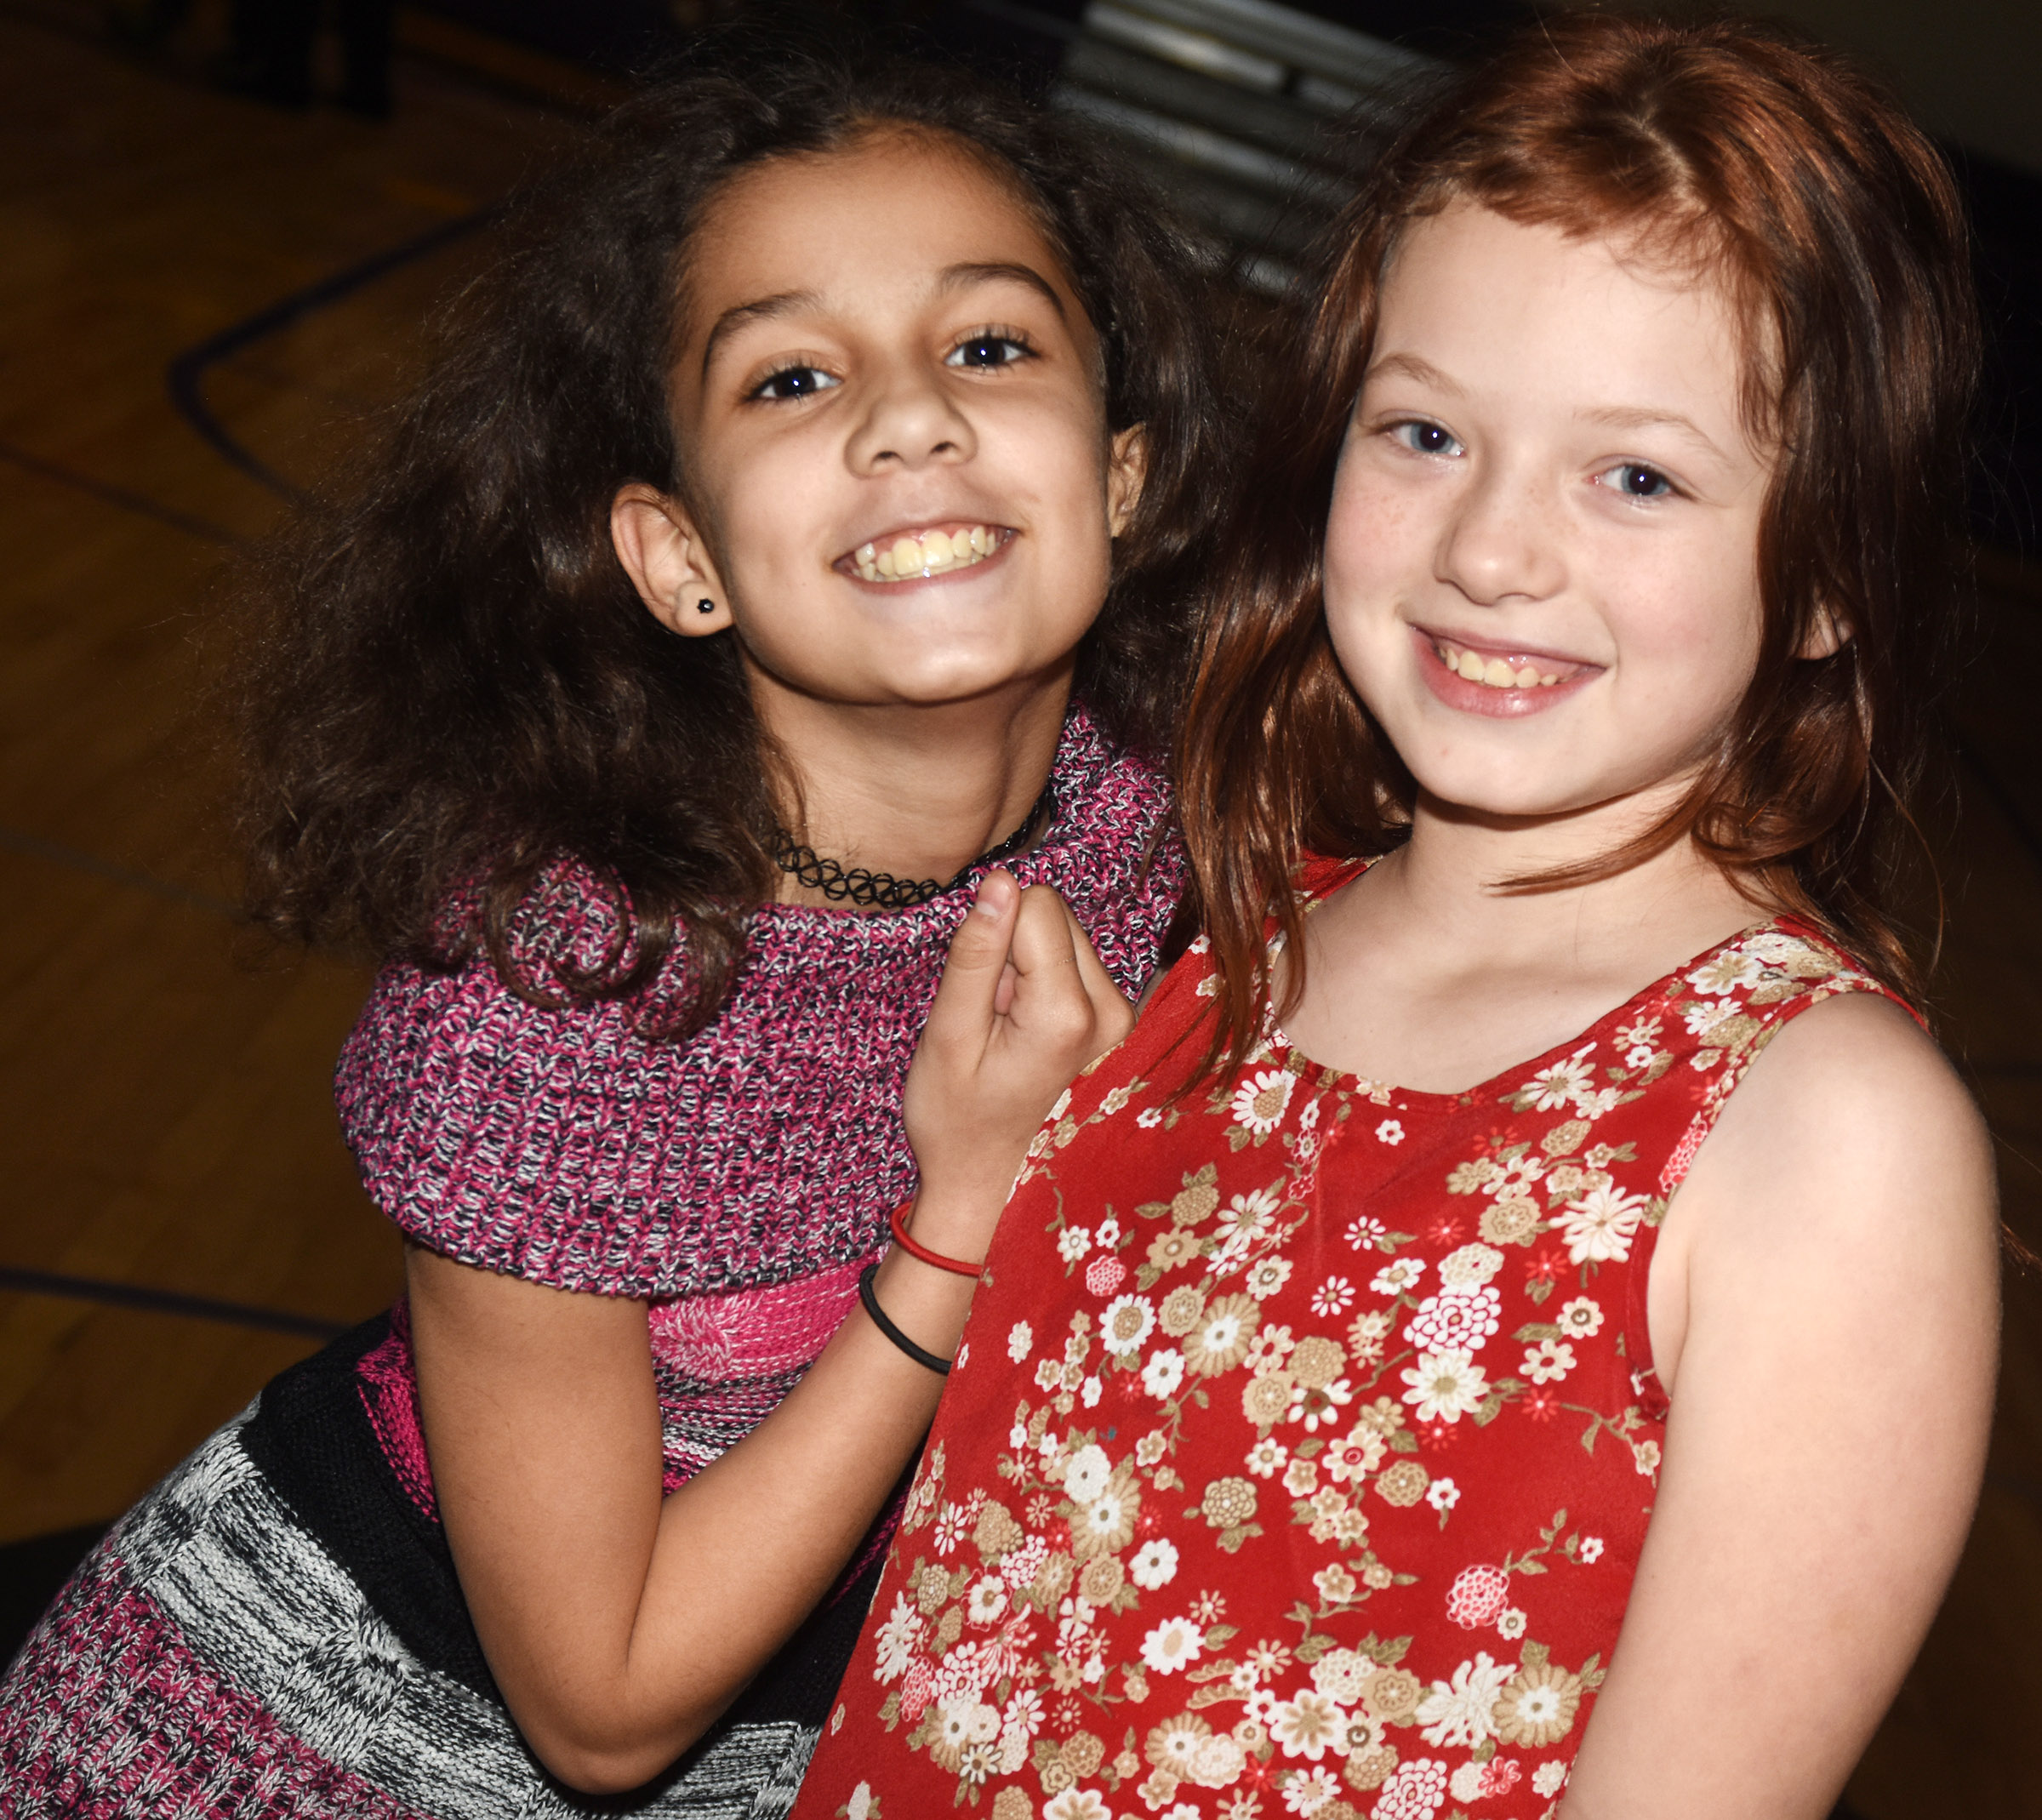 CES fifth-graders Mackenzie Negron, at left, and Kyra Parker pose for a photo at the dance.